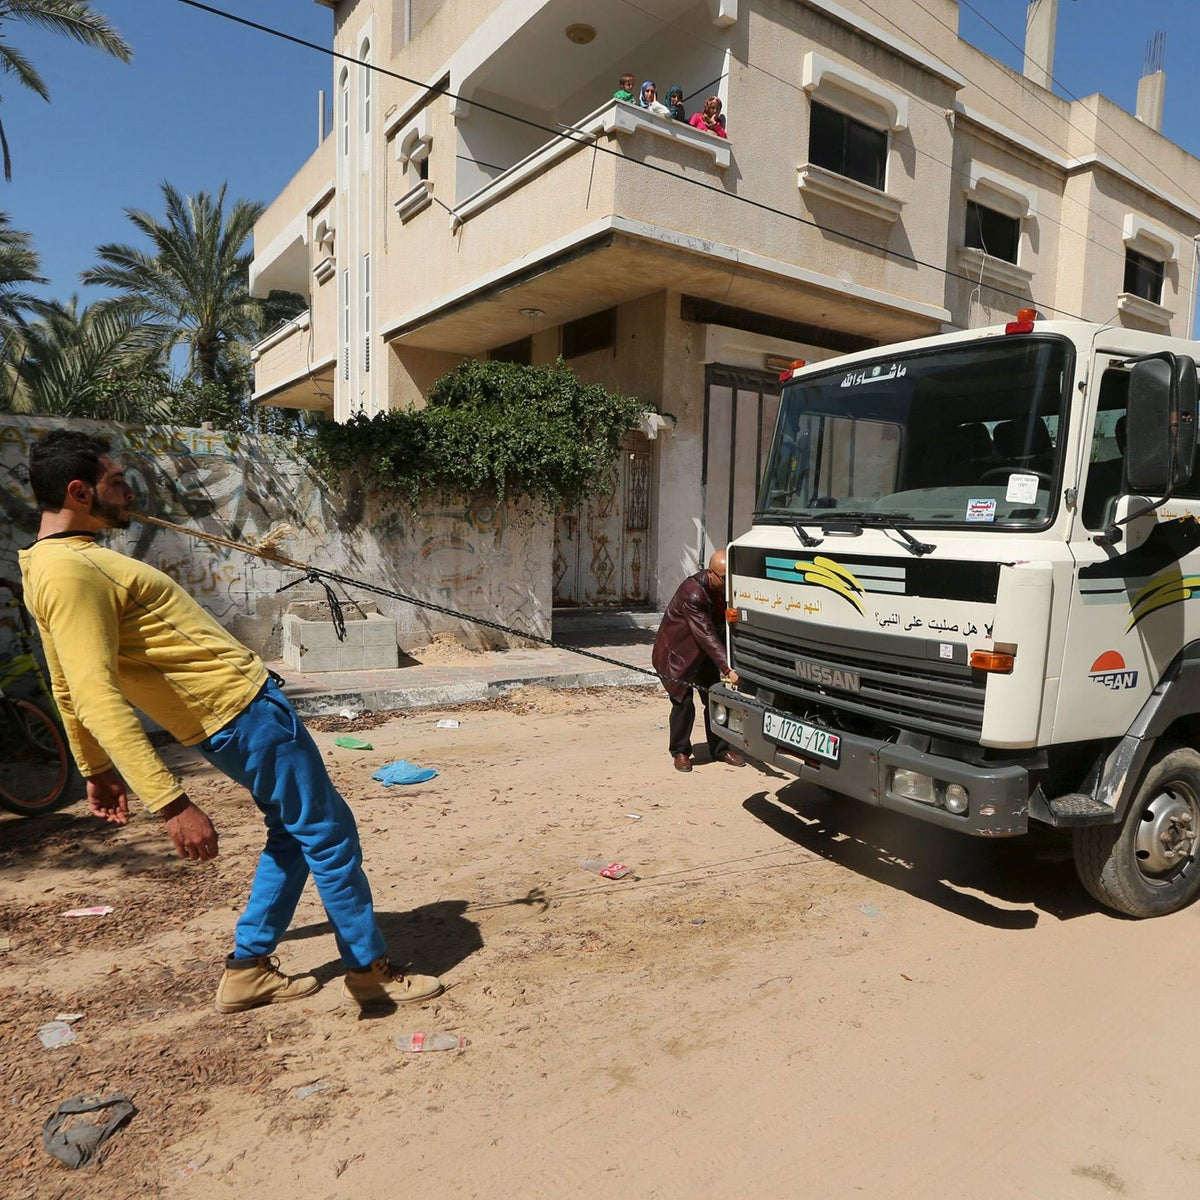 Palestinian Mohammad Baraka, 20, nicknamed by people as Gaza Samson, pulls a water tanker by a rope attached to his teeth as he exercises in Deir al-Balah in the central Gaza Strip March 5, 2016.